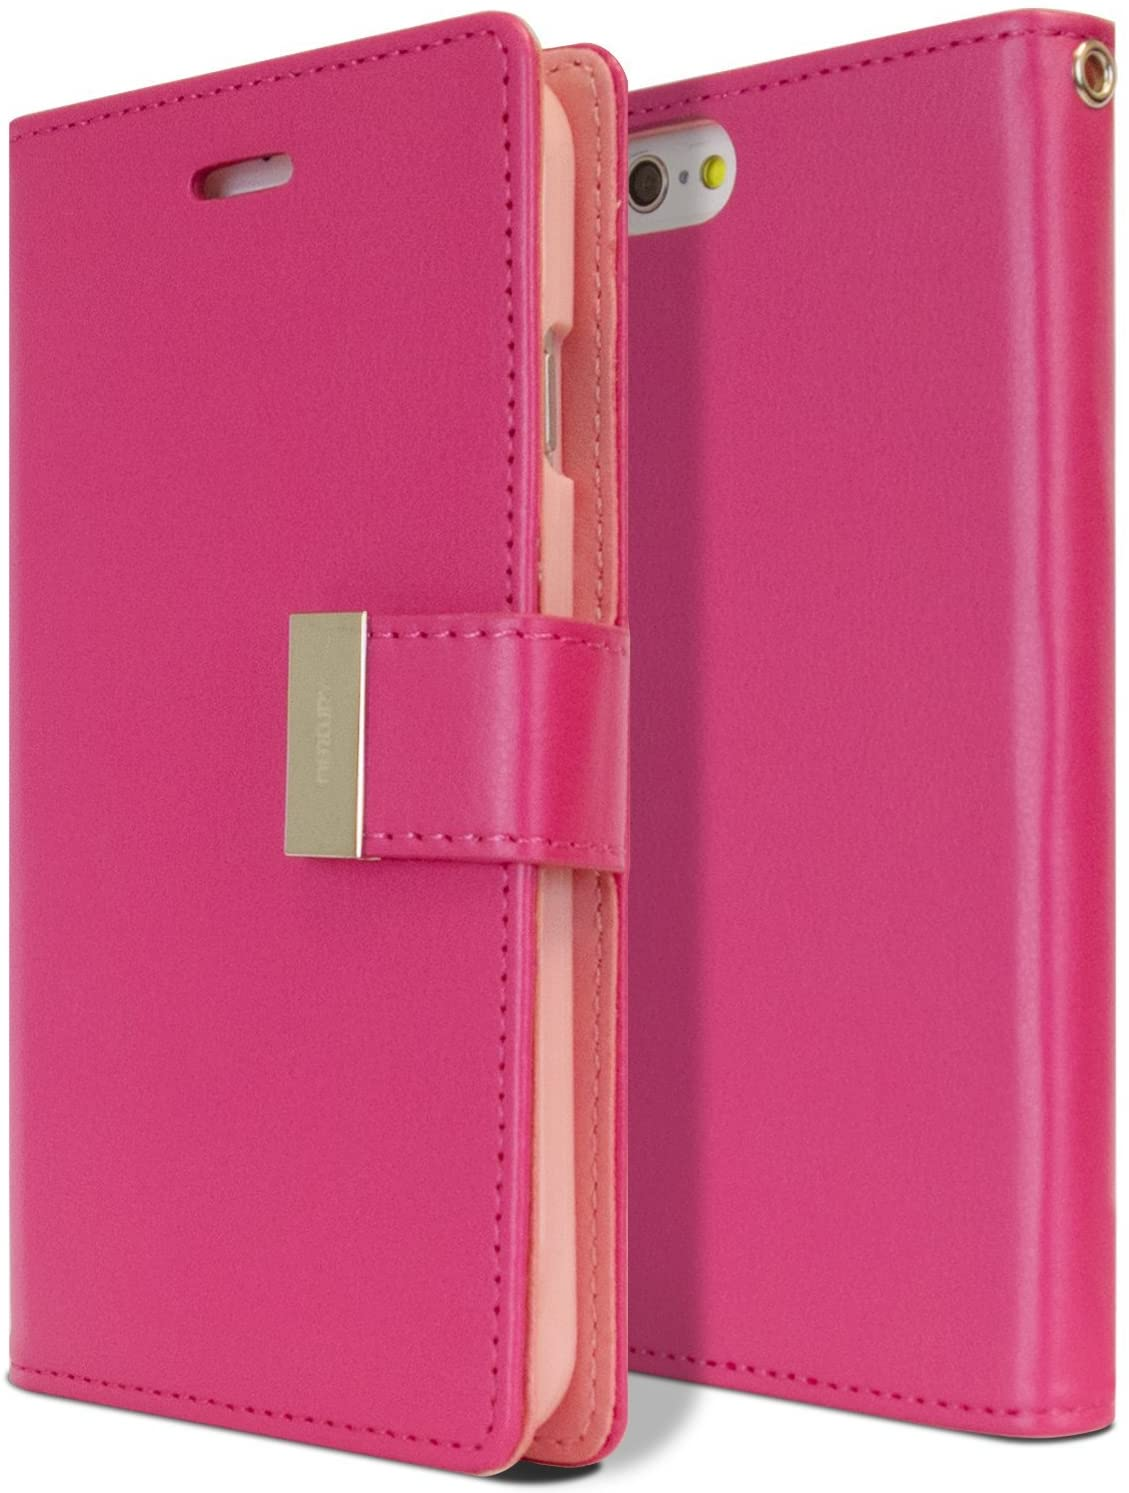 Goospery Rich Wallet for Apple iPhone 6S Case (2015) iPhone 6 Case (2014) Extra Card Slots Leather Flip Cover (Hot Pink) IP6-RIC-HPNK